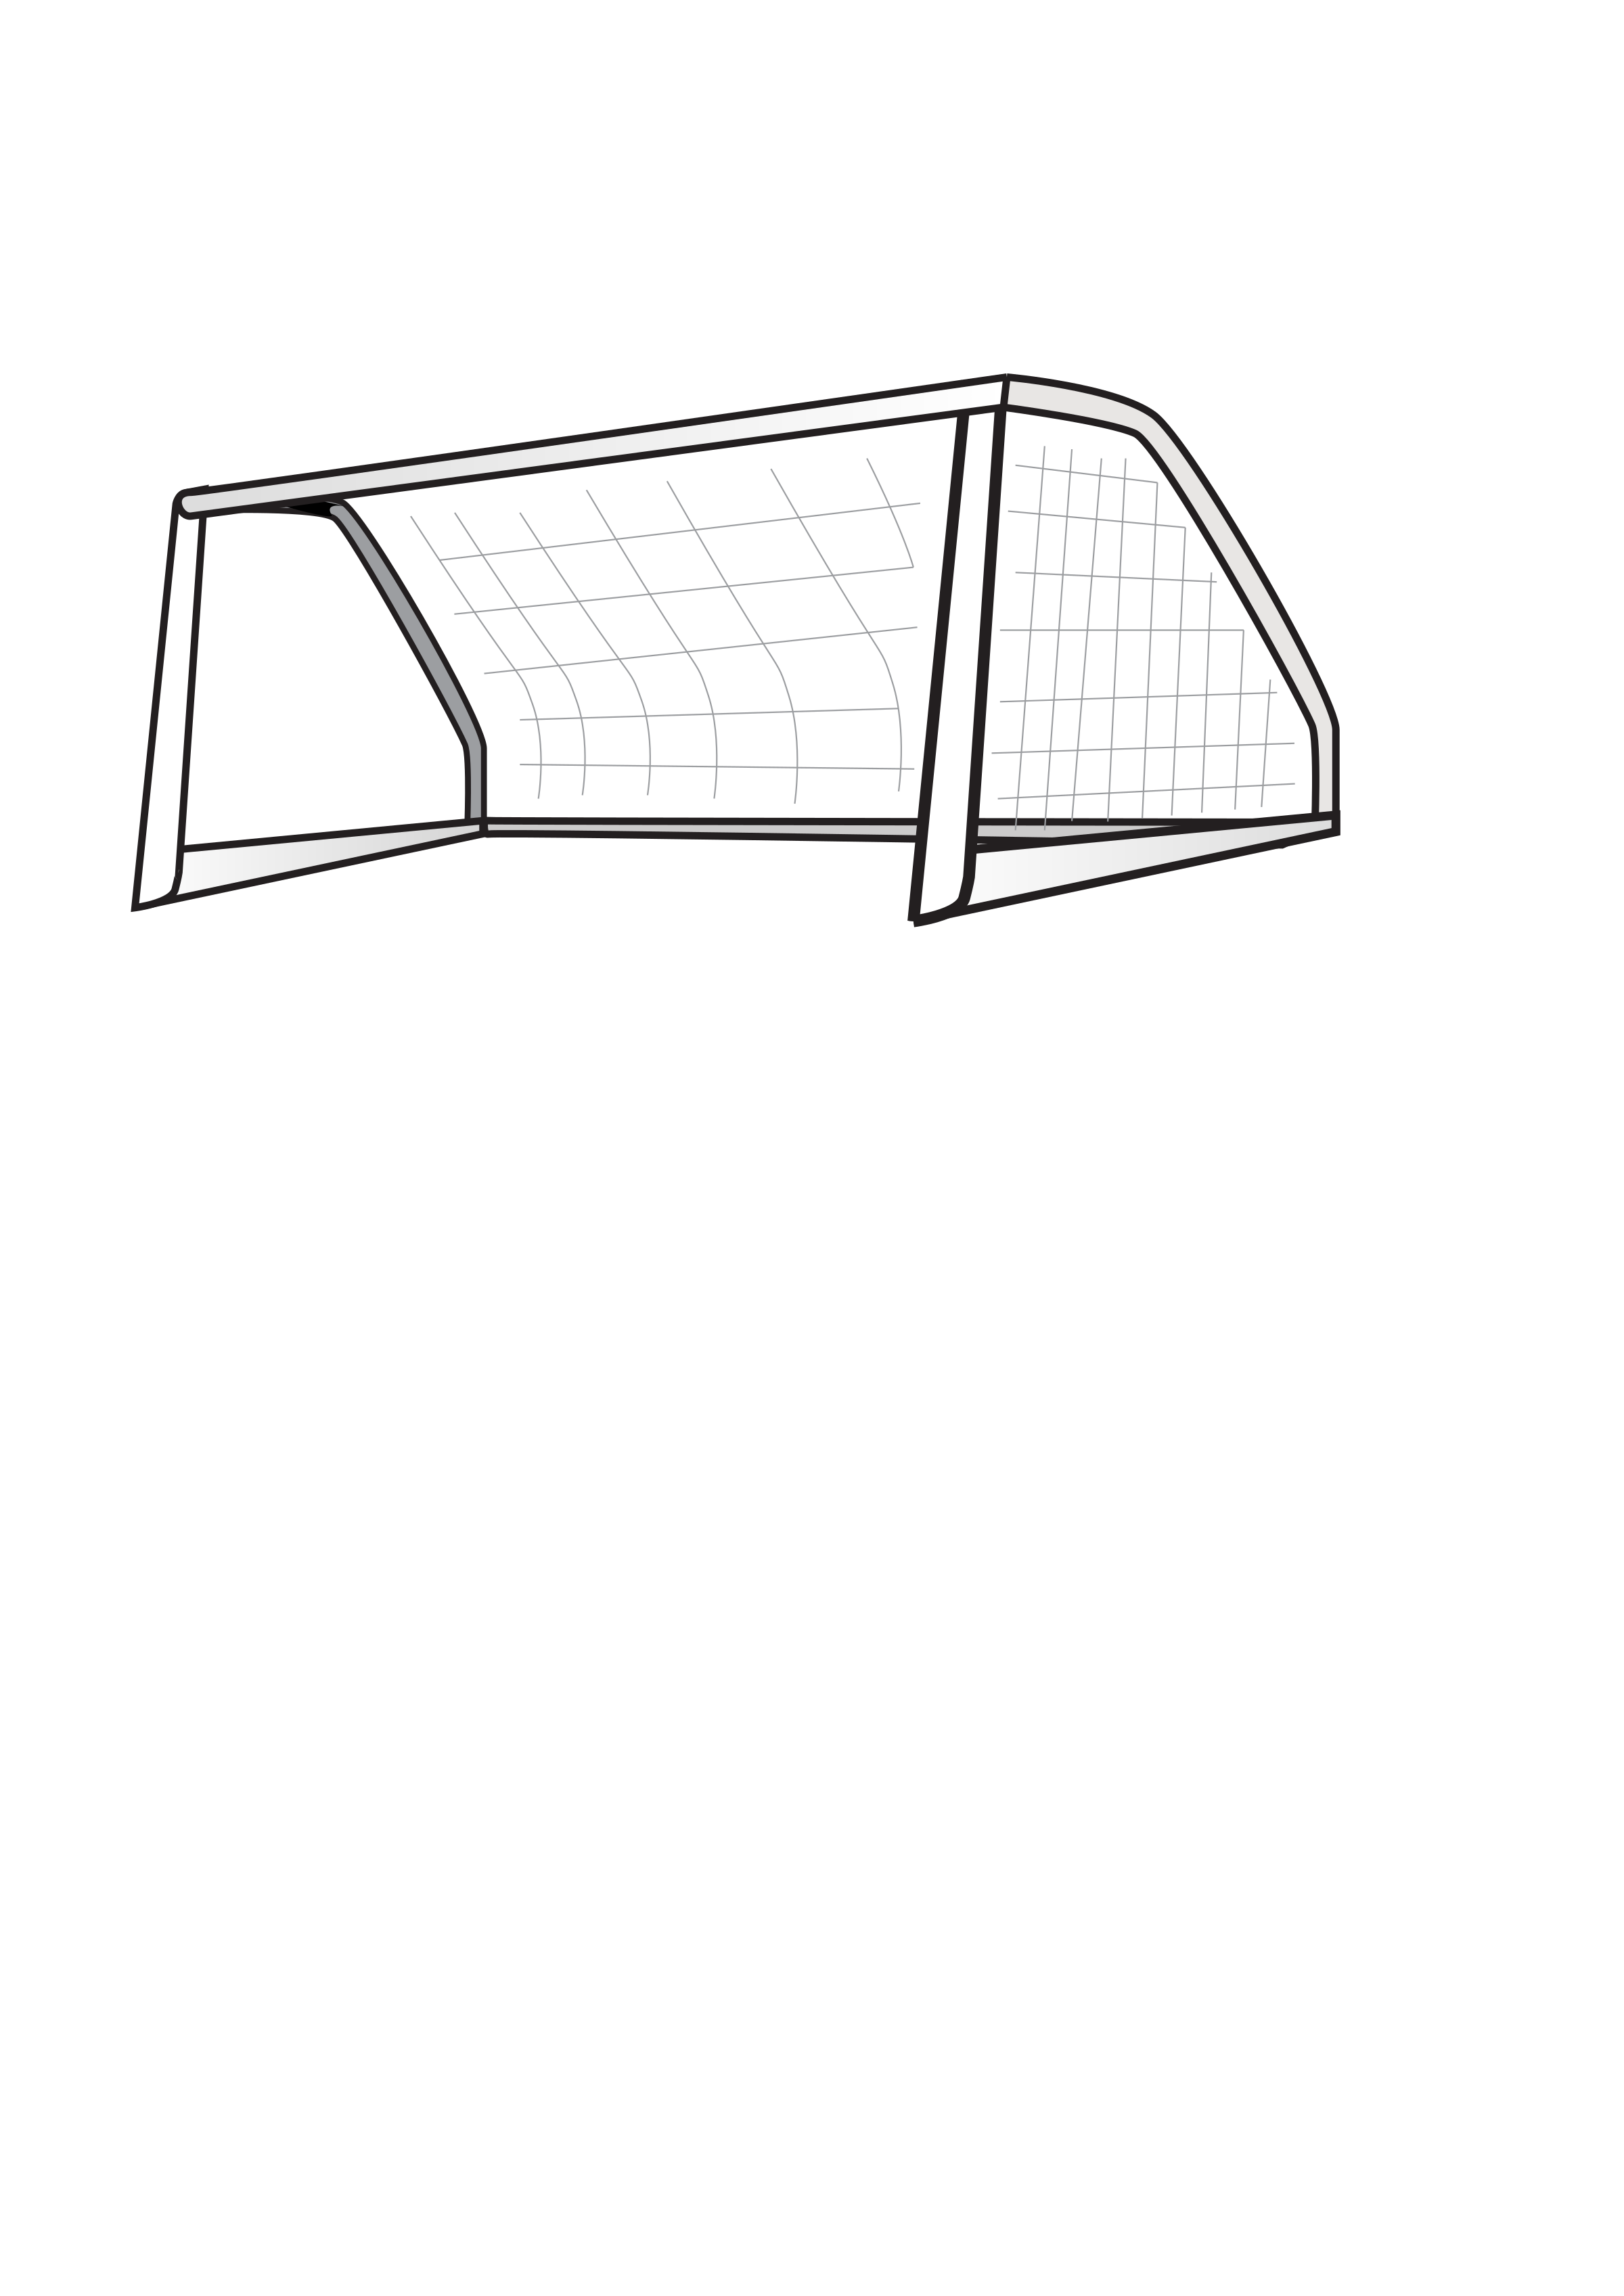 Soccer goal clipart png. Collection of free